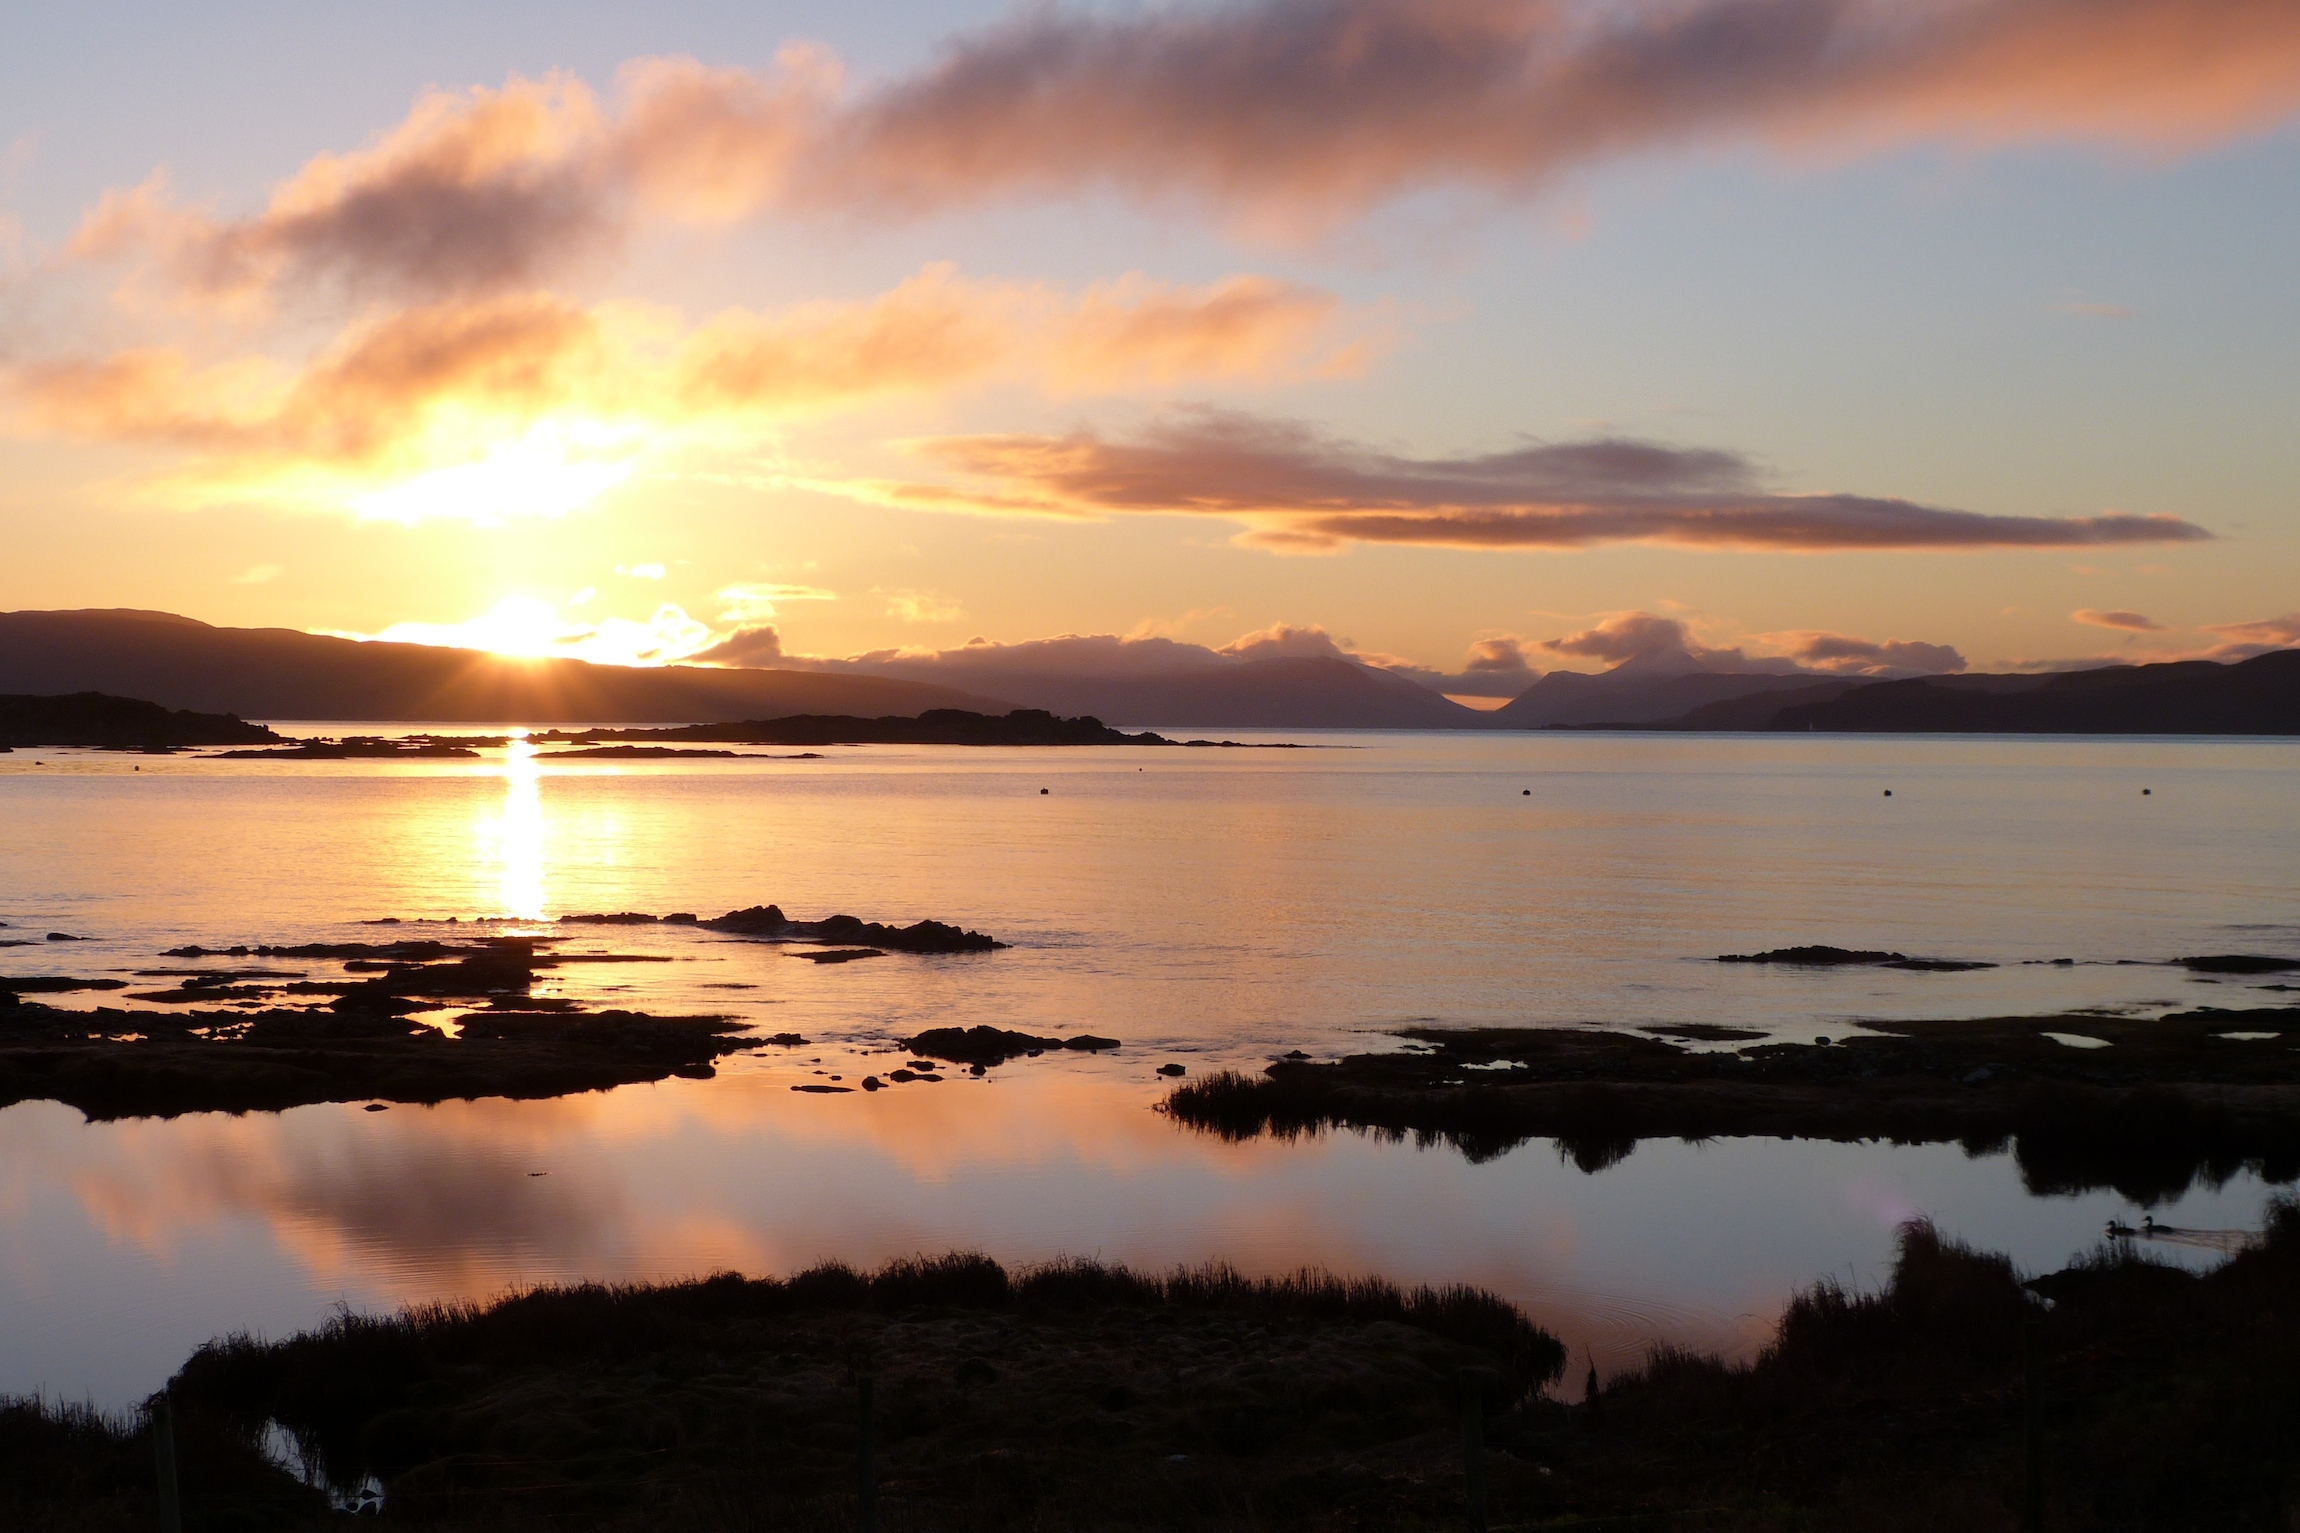 Sunrise across Kilchoan Bay